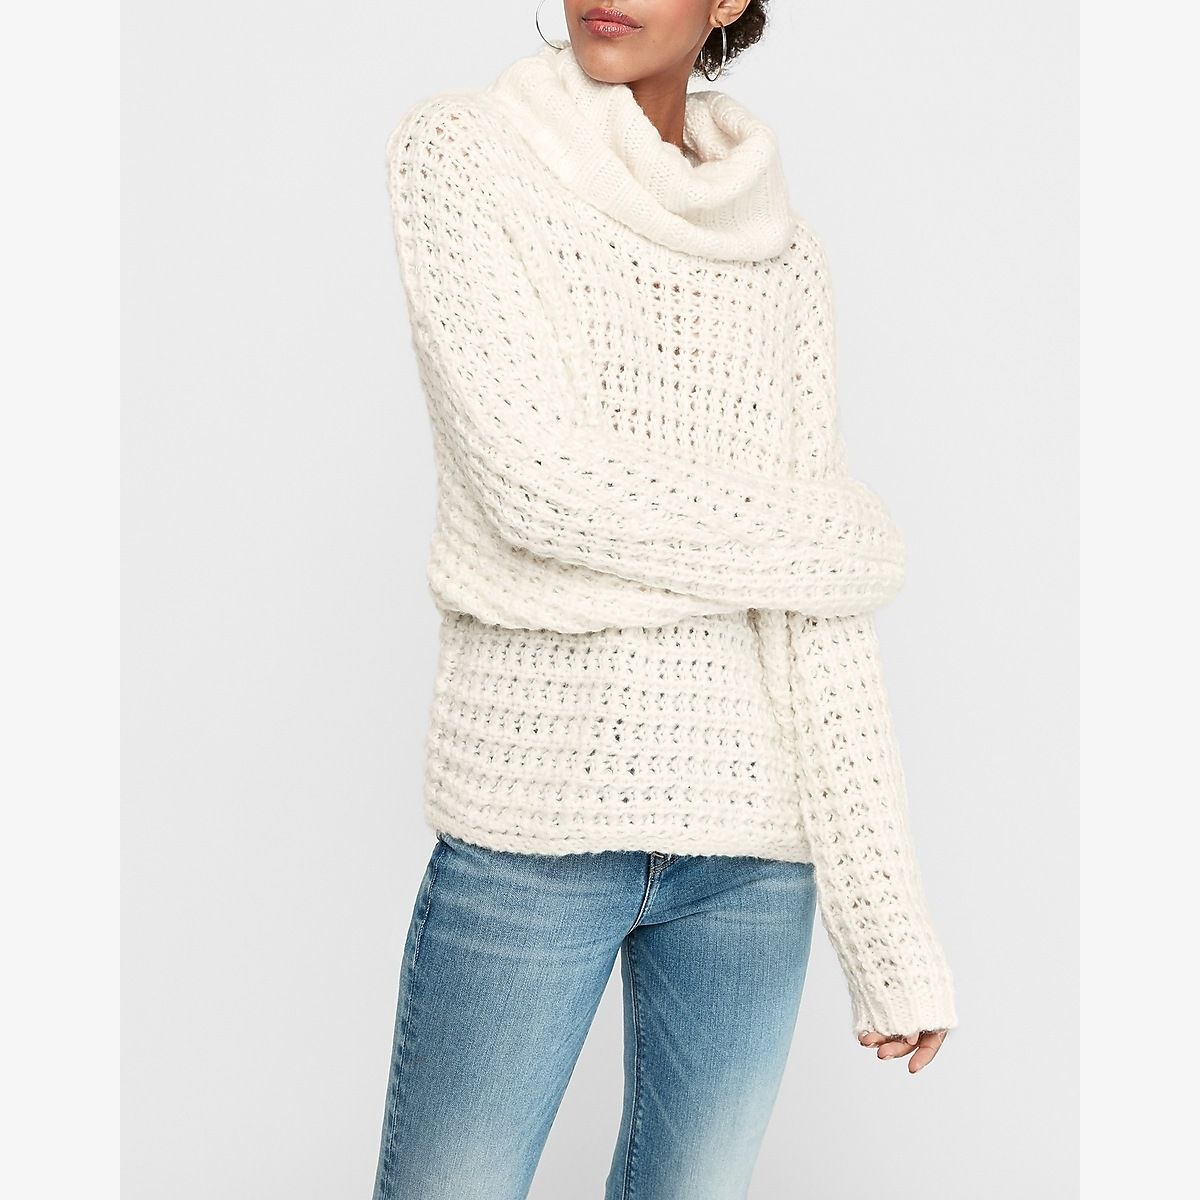 Oversized Cowl Neck Knit Dolman Sweater White Women S Xs Oversized Cowl Neck Sweater Oversized Cowl Neck Chic Sweaters